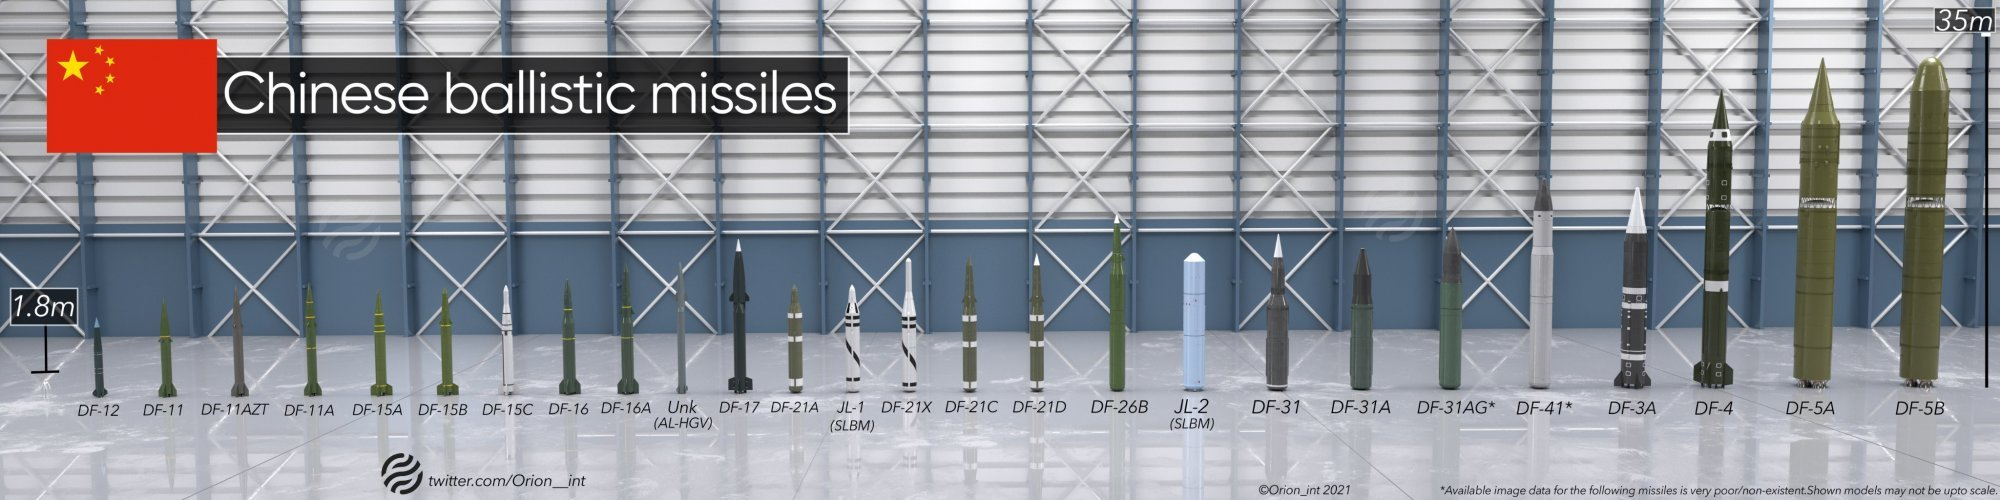 Chinese Ballistic Missiles - Modelling by Orion_int June 2021.jpg